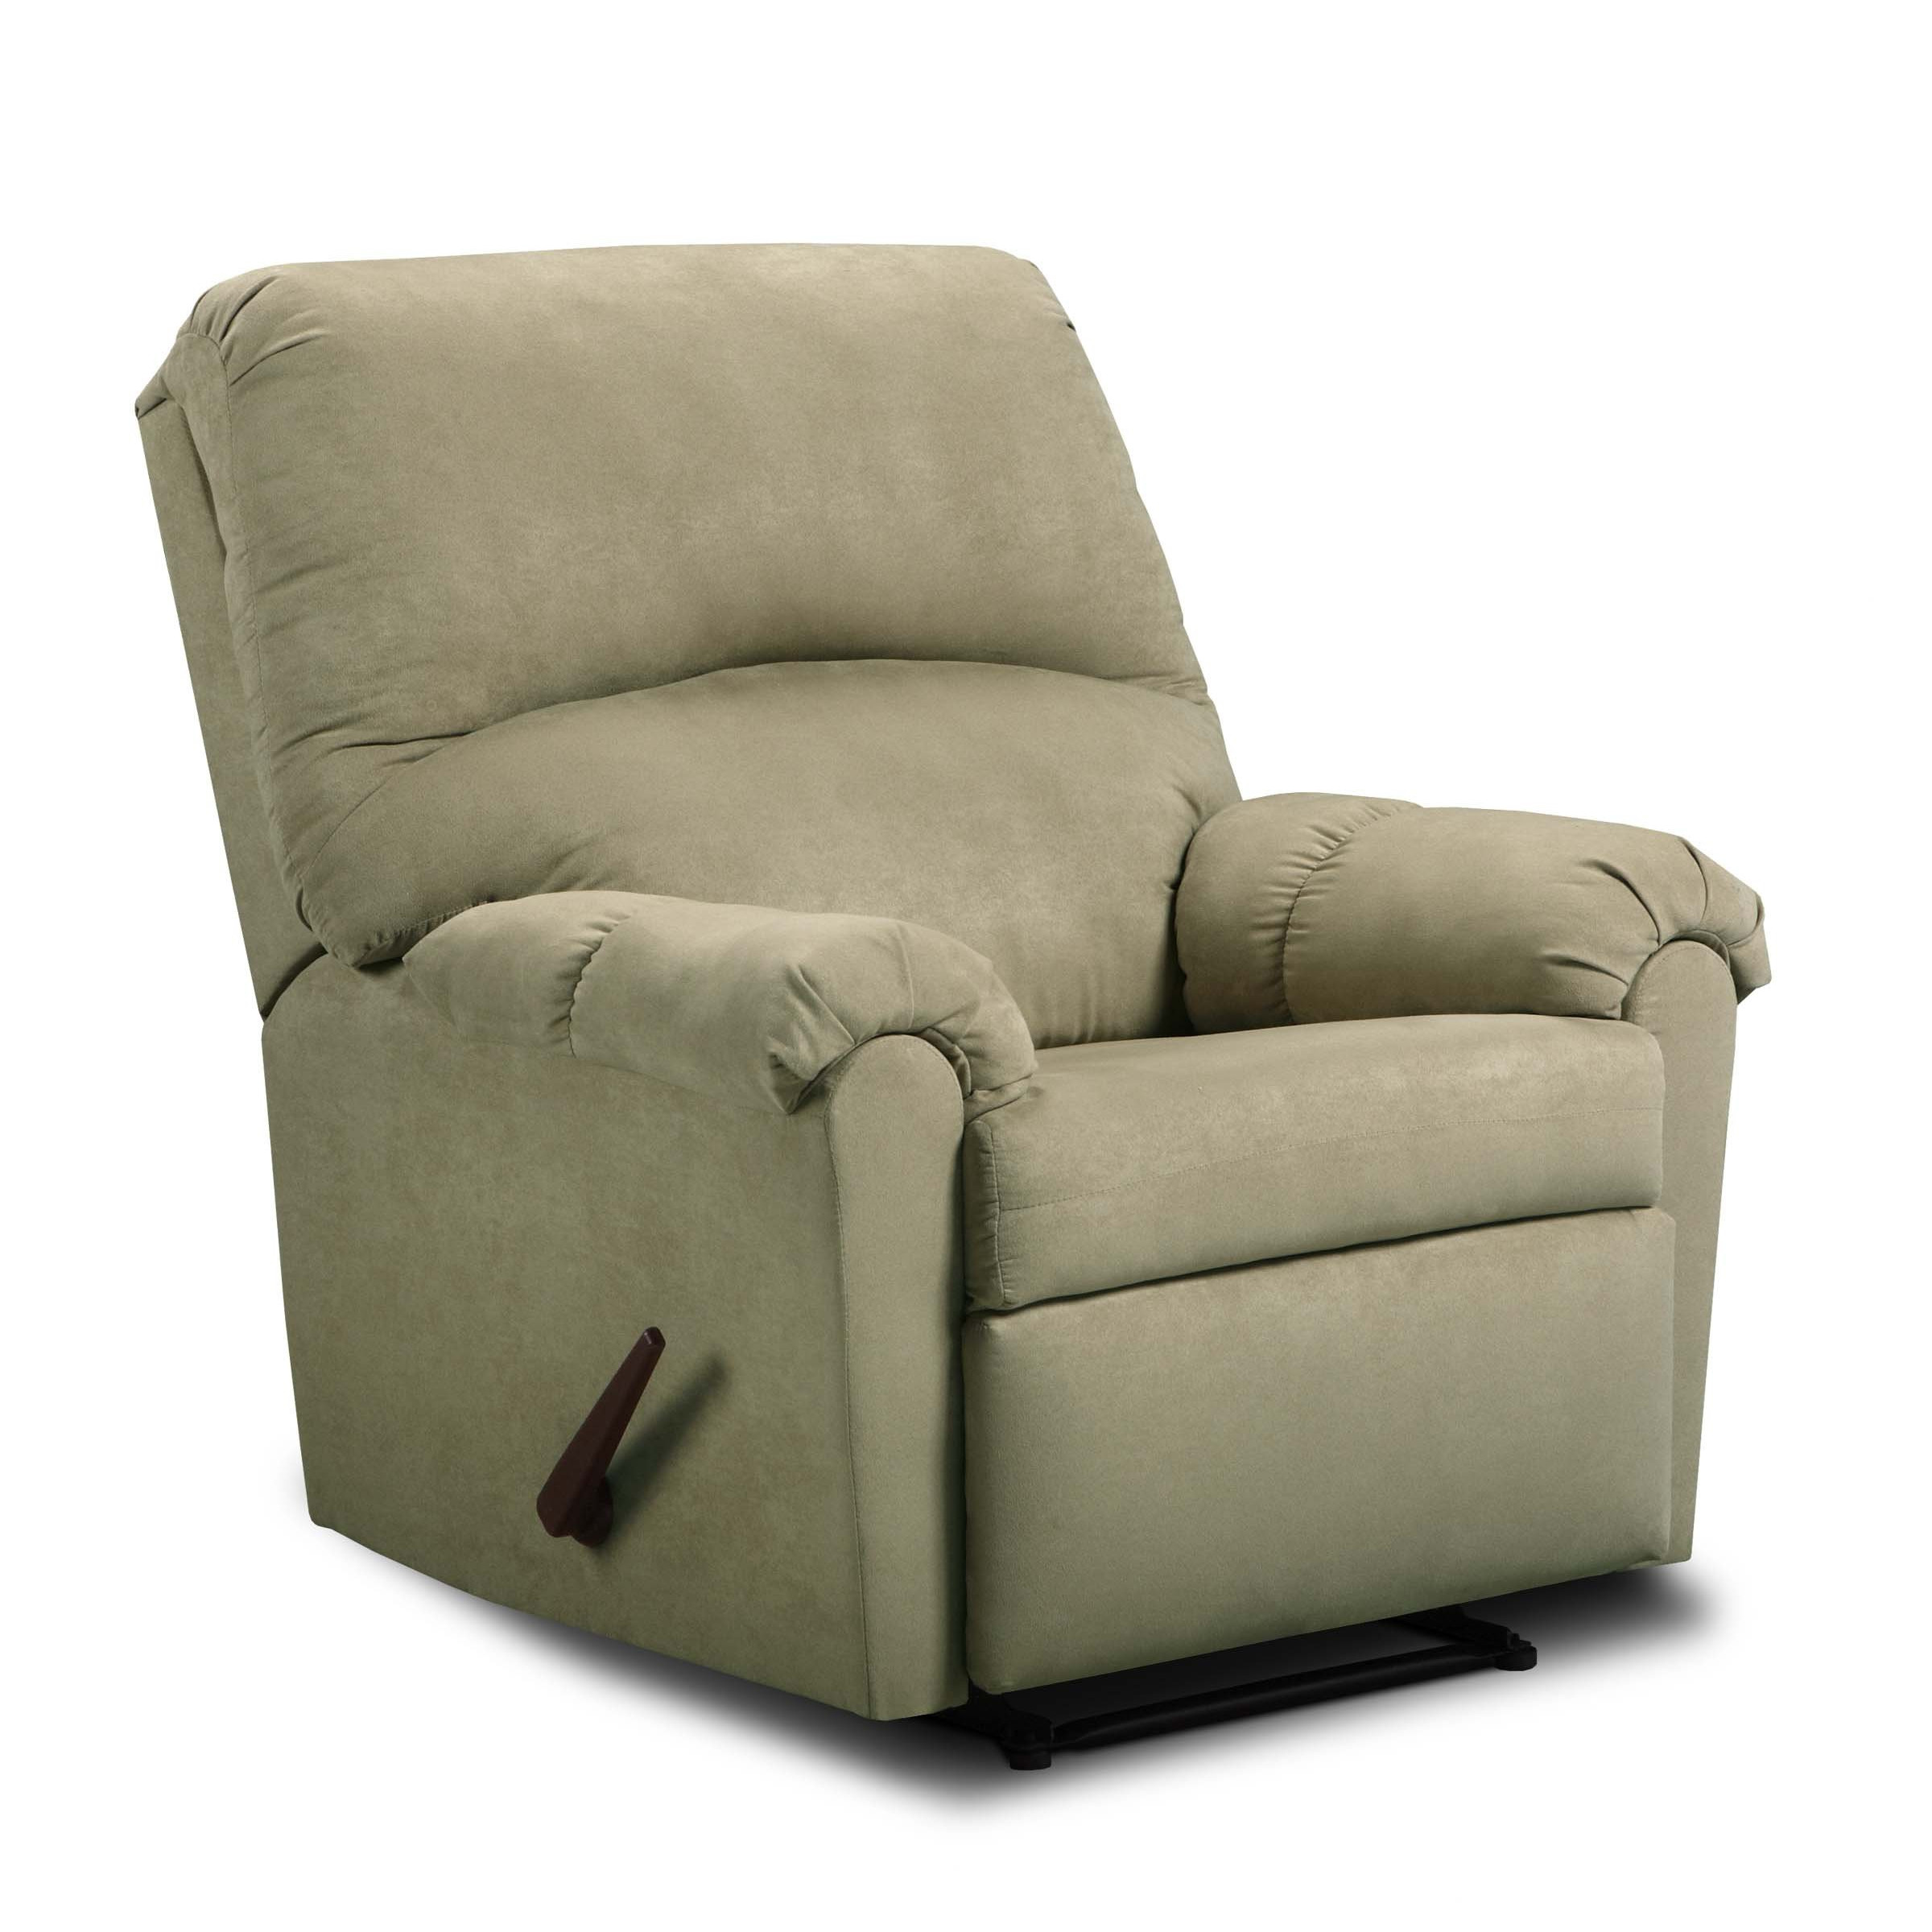 Grey Chair Slipcovers | Recliner Covers | Couch Covers for Reclining Couch